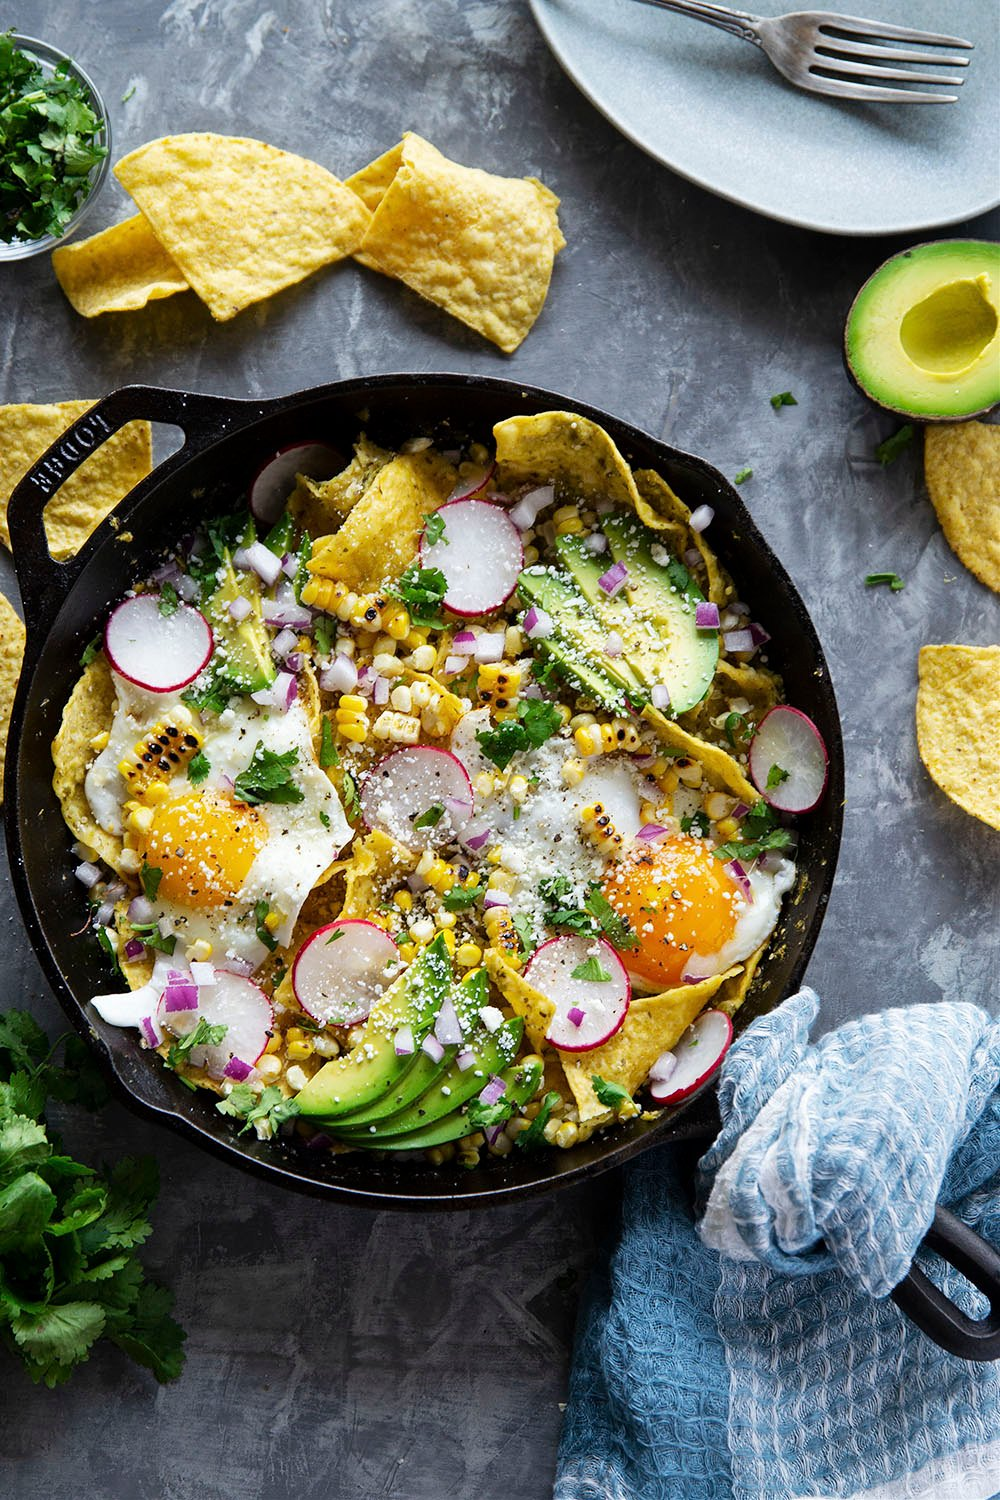 Classic chilaquiles verdes features crispy corn chips smothered in a homemade salsa verde and topped with charred sweet corn, fried eggs, and all the extra toppings you desire!